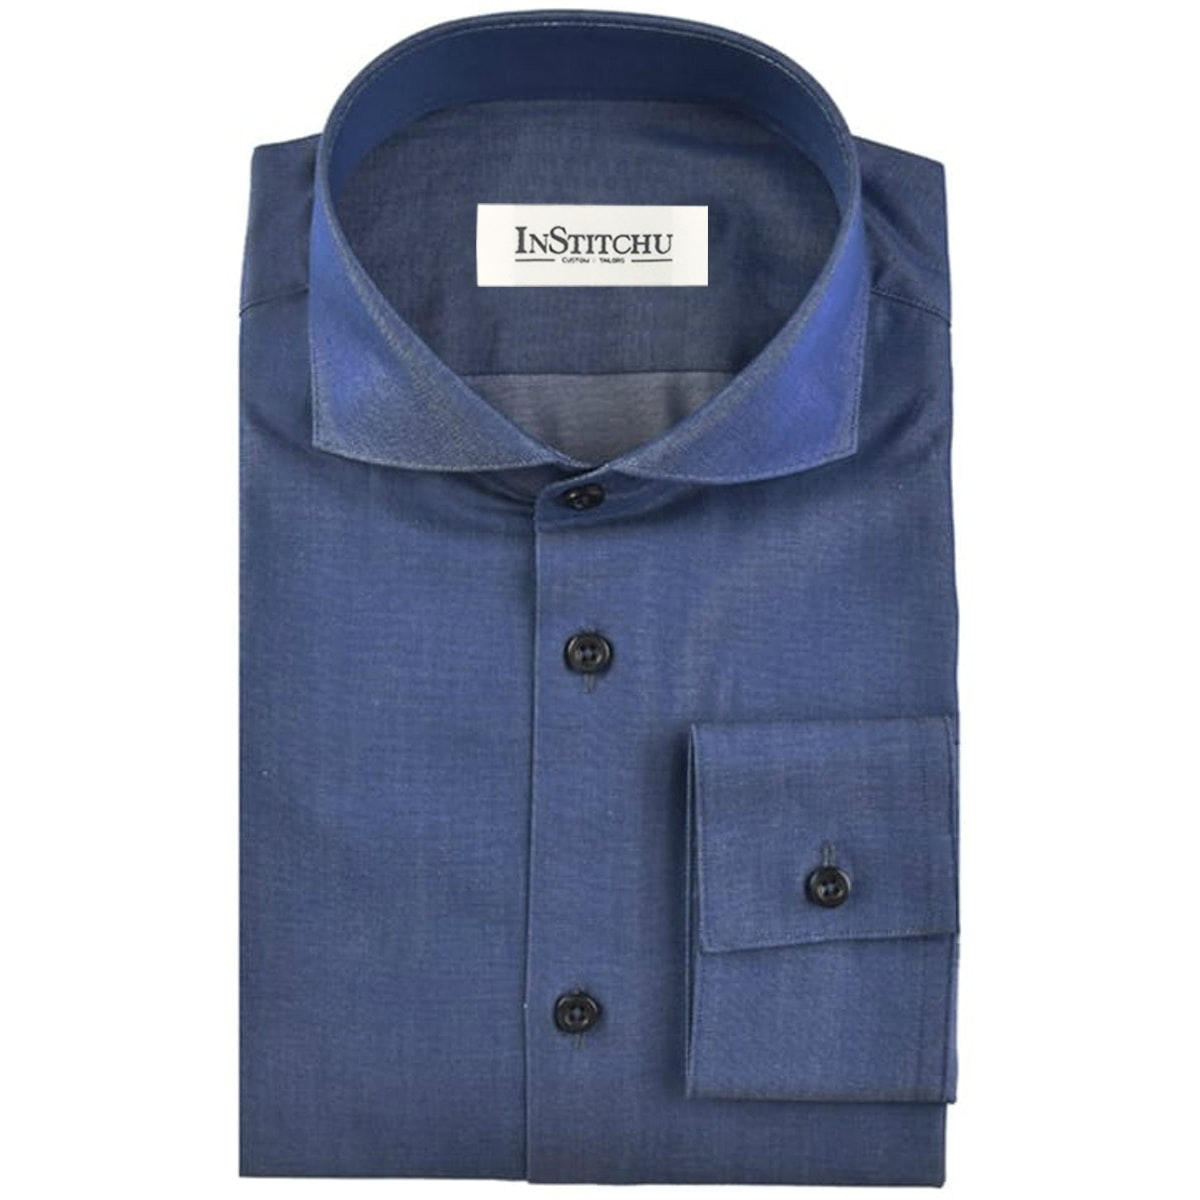 InStitchu Collection The Aldinga Blue Chambray Shirt